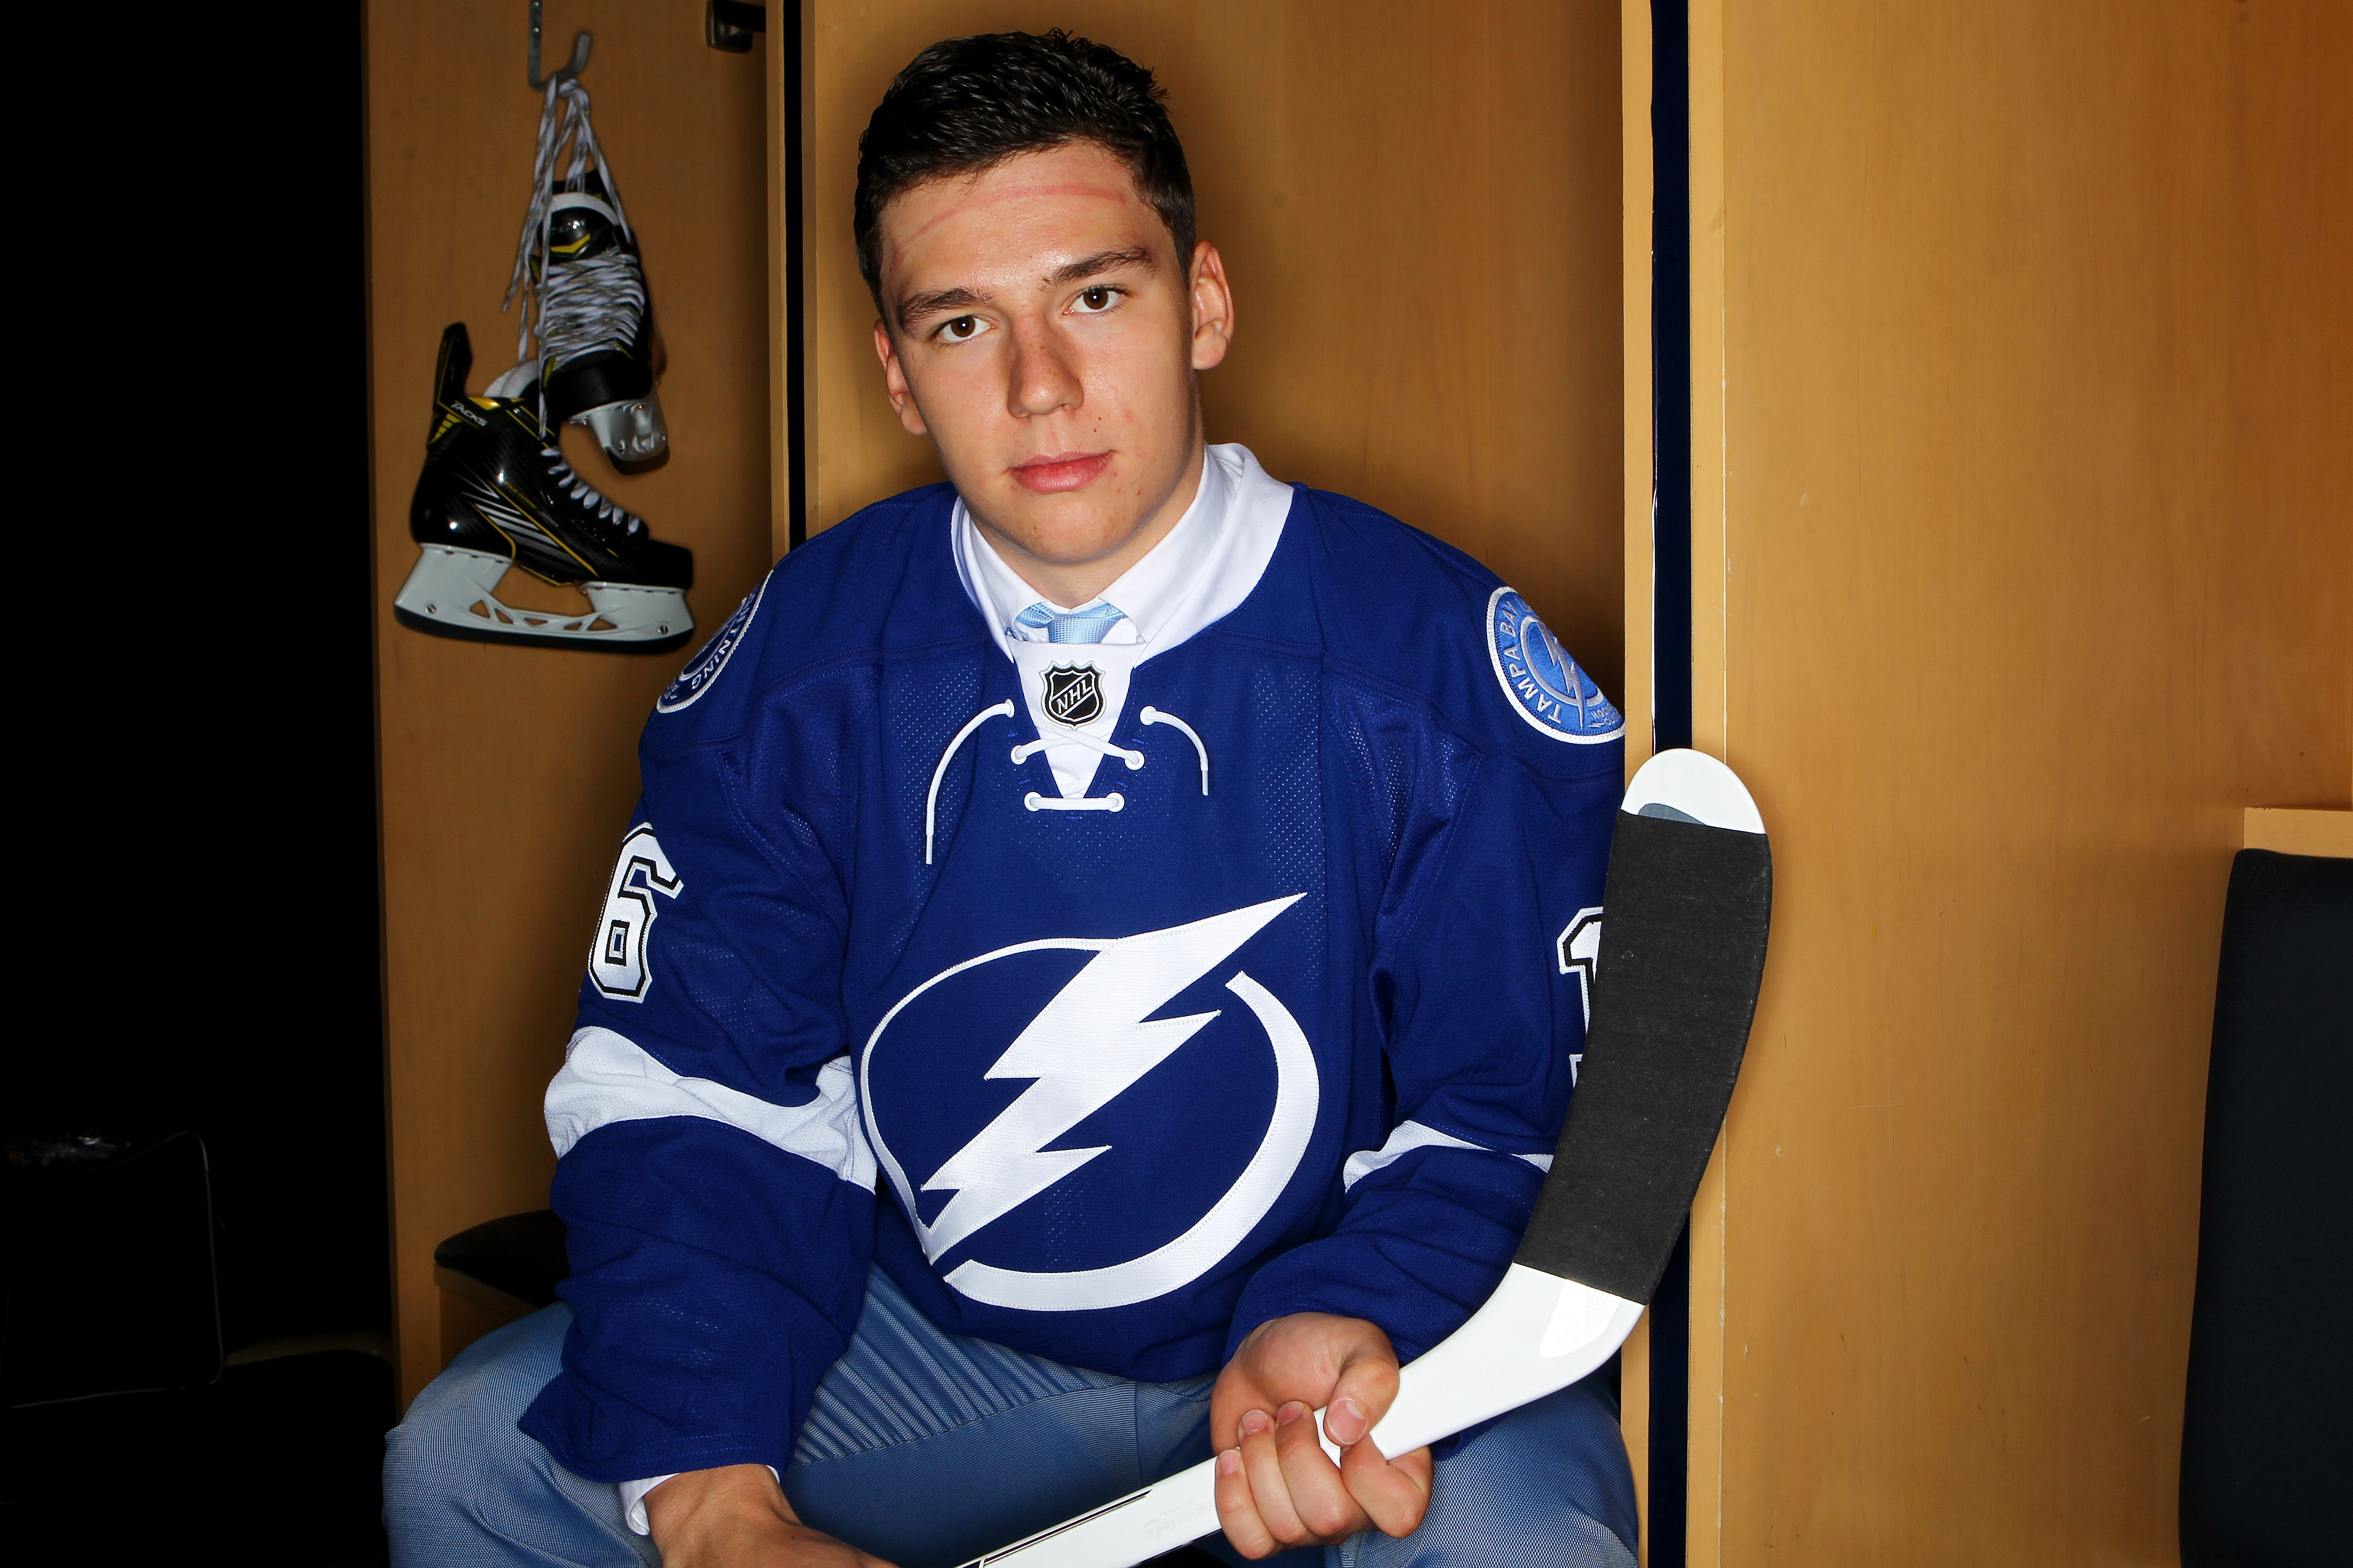 Libor Hajek poses for a portrait after being selected 37th overall by the Tampa Bay Lightning during the 2016 NHL Draft on June 25, 2016 in Buffalo, New York.